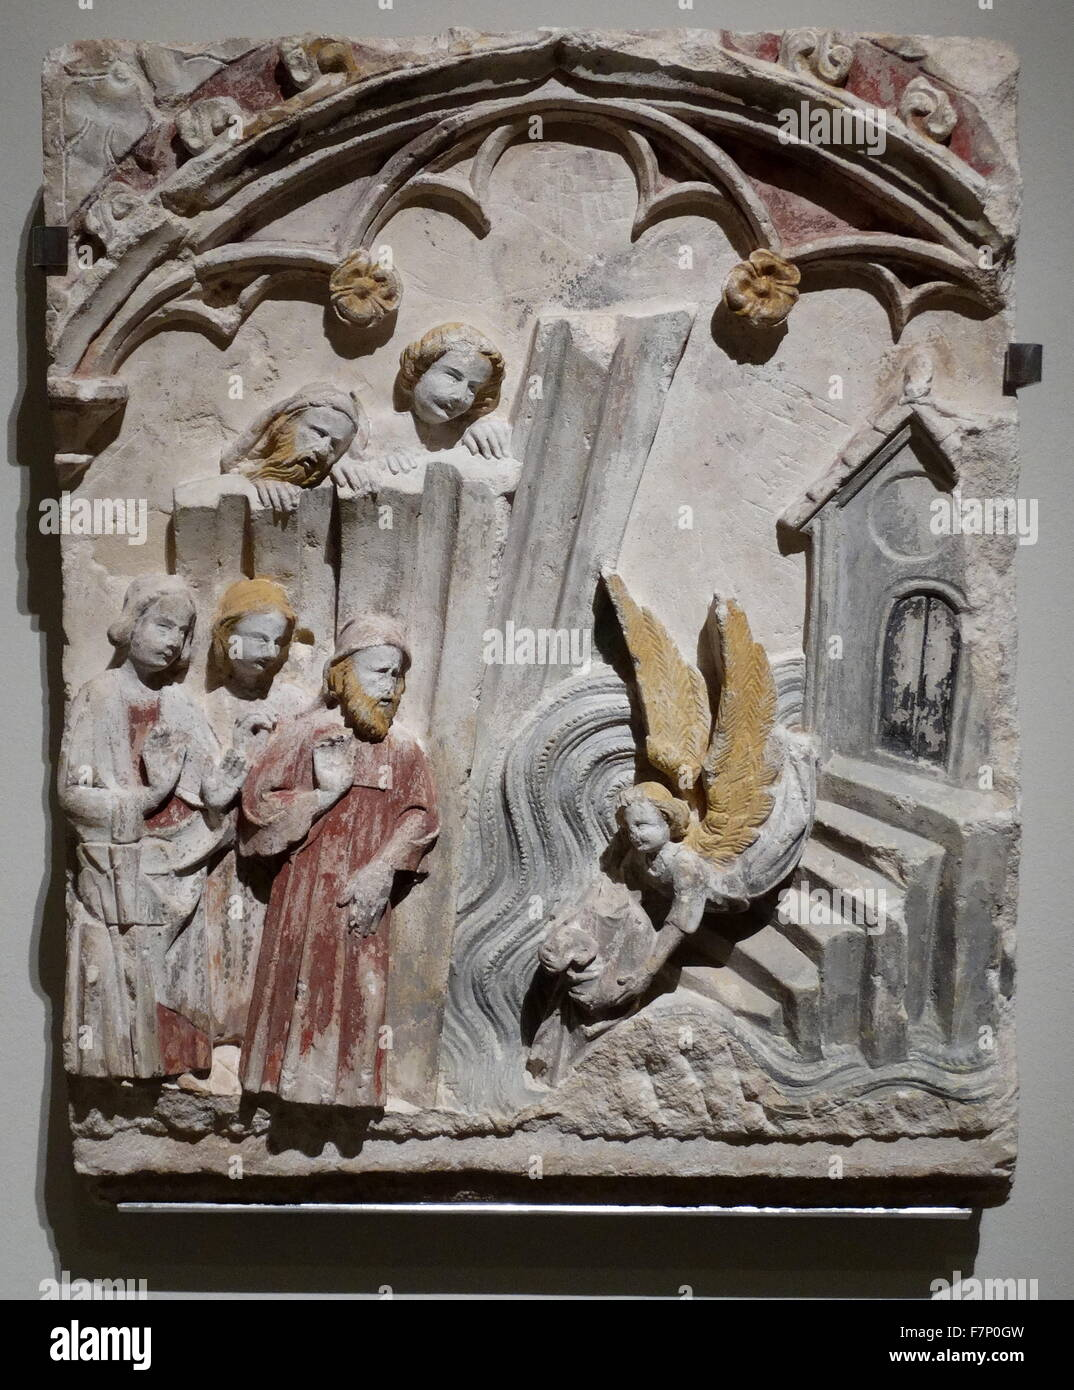 Tableau relief of St. Michael by Mestre San Mateo. Dated 14th Century - Stock Image